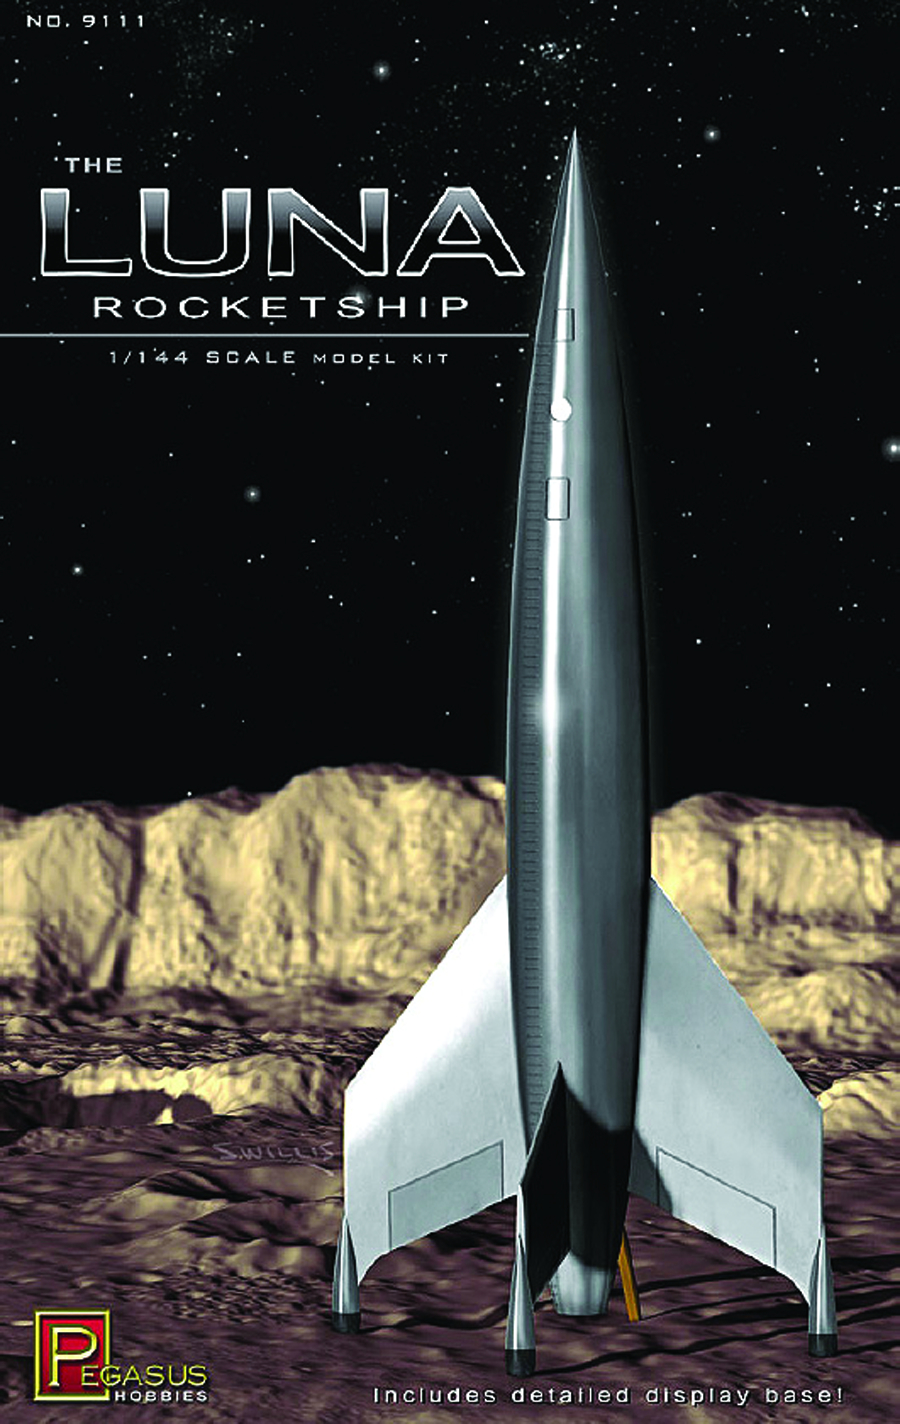 LUNA ROCKETSHIP 1/144 SCALE MODEL KIT